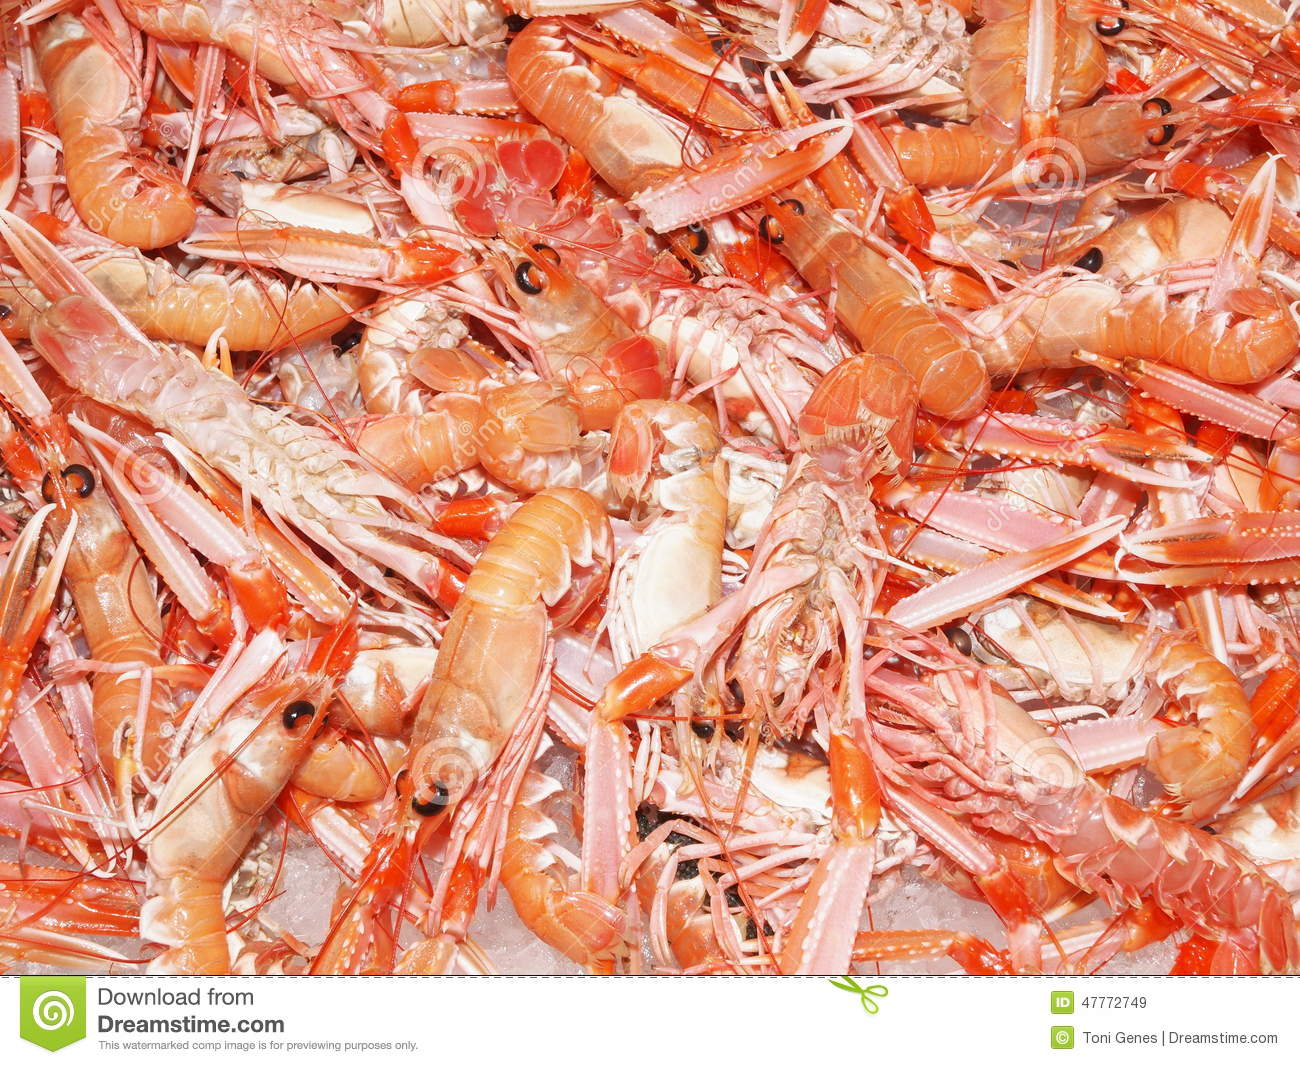 Red Lobsters On Ice Stock Photo - Image: 47772749